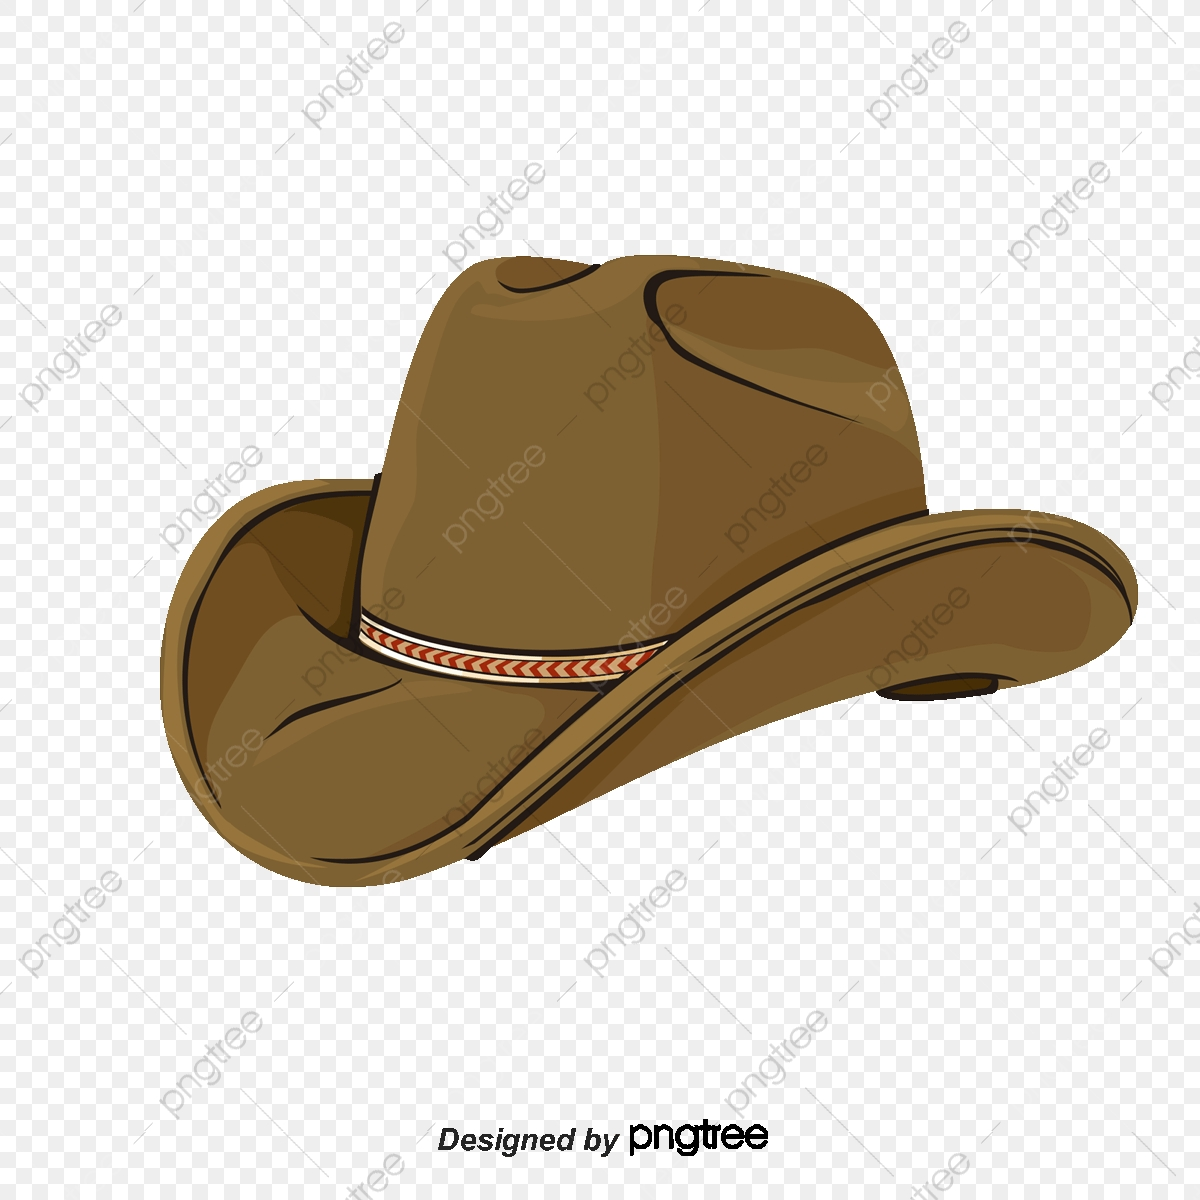 Cowboy Hat Cowboy Hat Clipart Vector Cowboy Png Transparent Clipart Image And Psd File For Free Download Please to search on seekpng.com. https pngtree com freepng cowboy hat 2613986 html